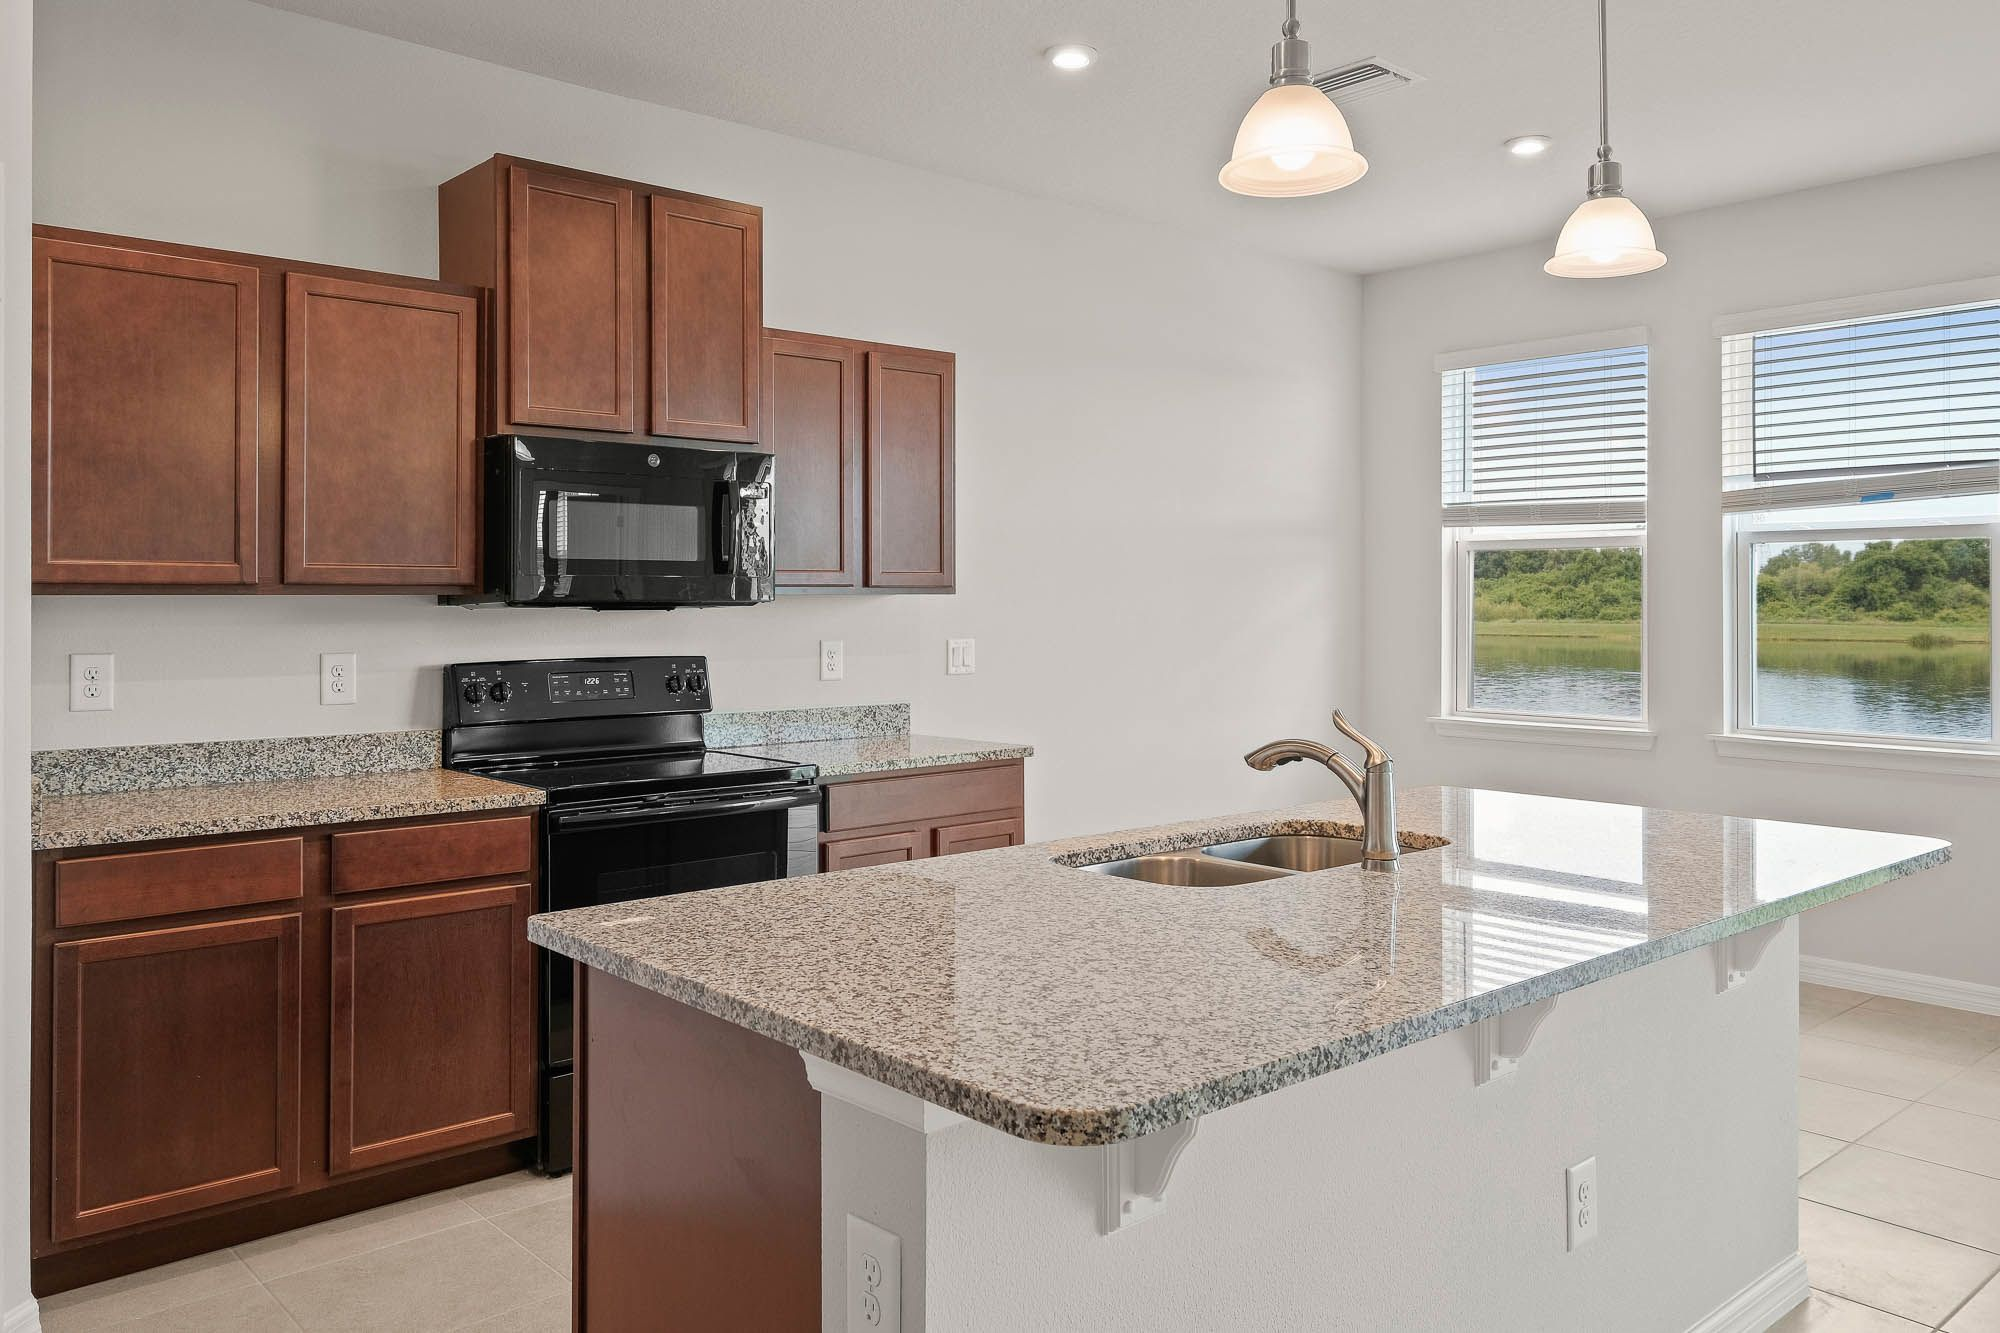 Kitchen featured in the Jasmine Cove By Ryan Homes in Miami-Dade County, FL